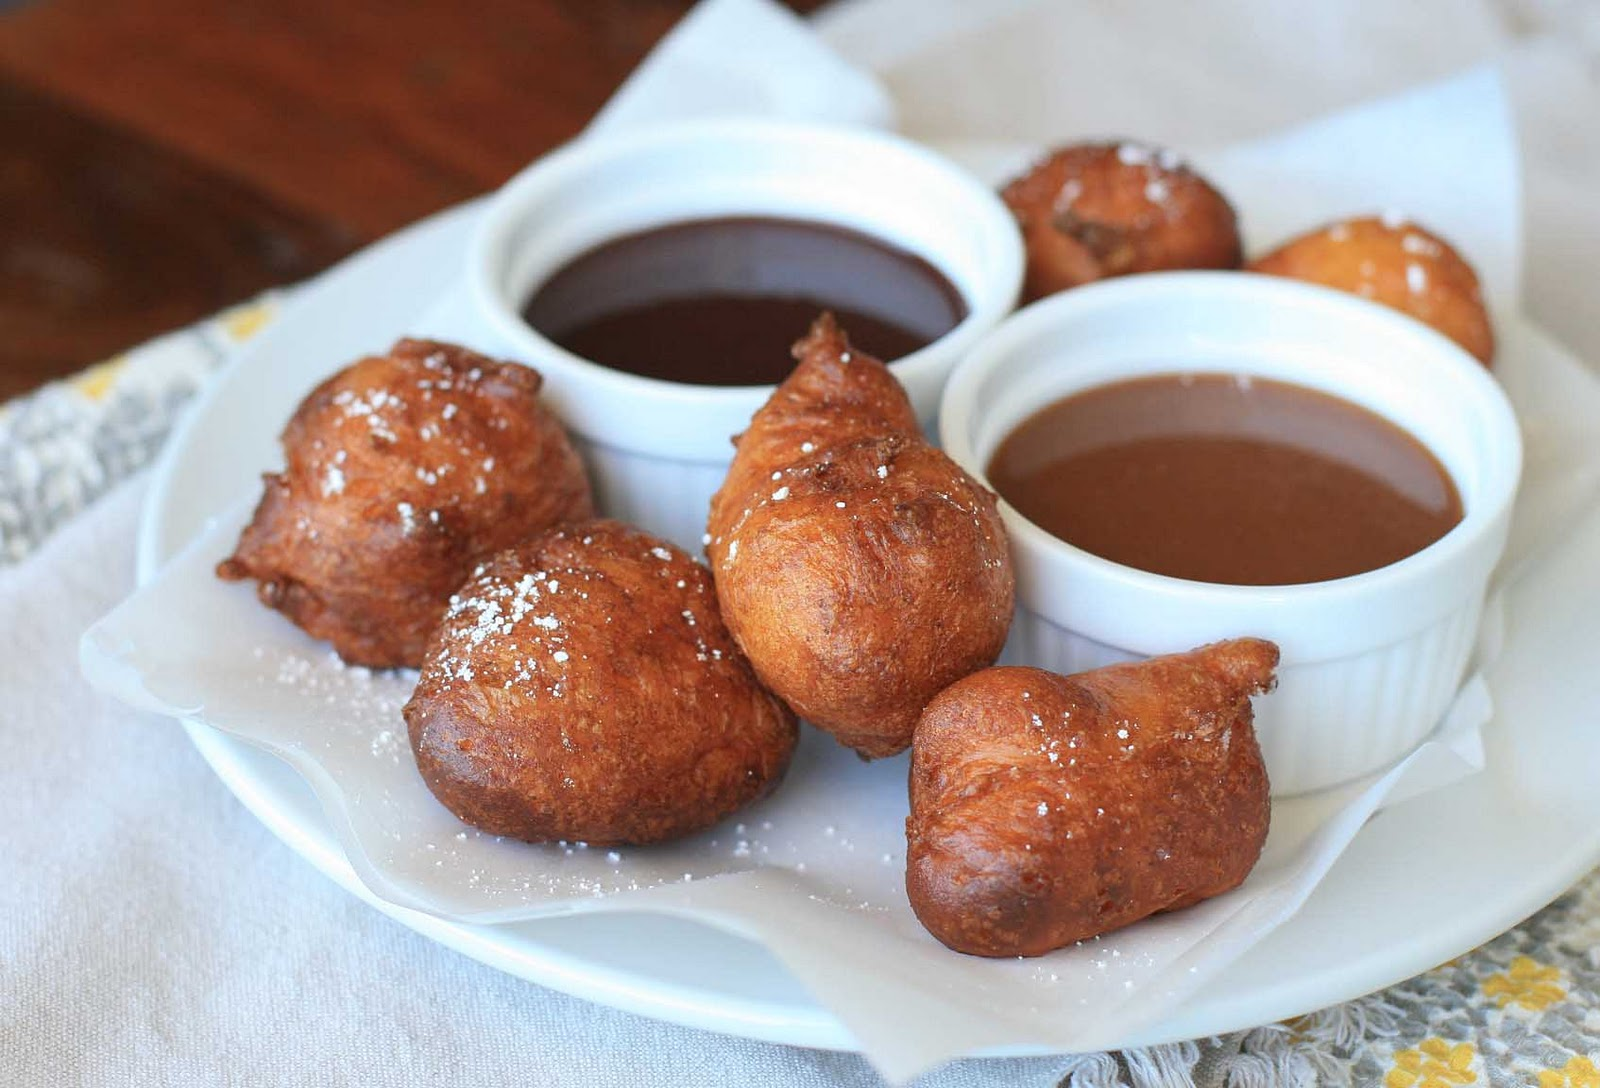 Hanukkah Fritters With Warm Chocolate Sauce Recipes — Dishmaps